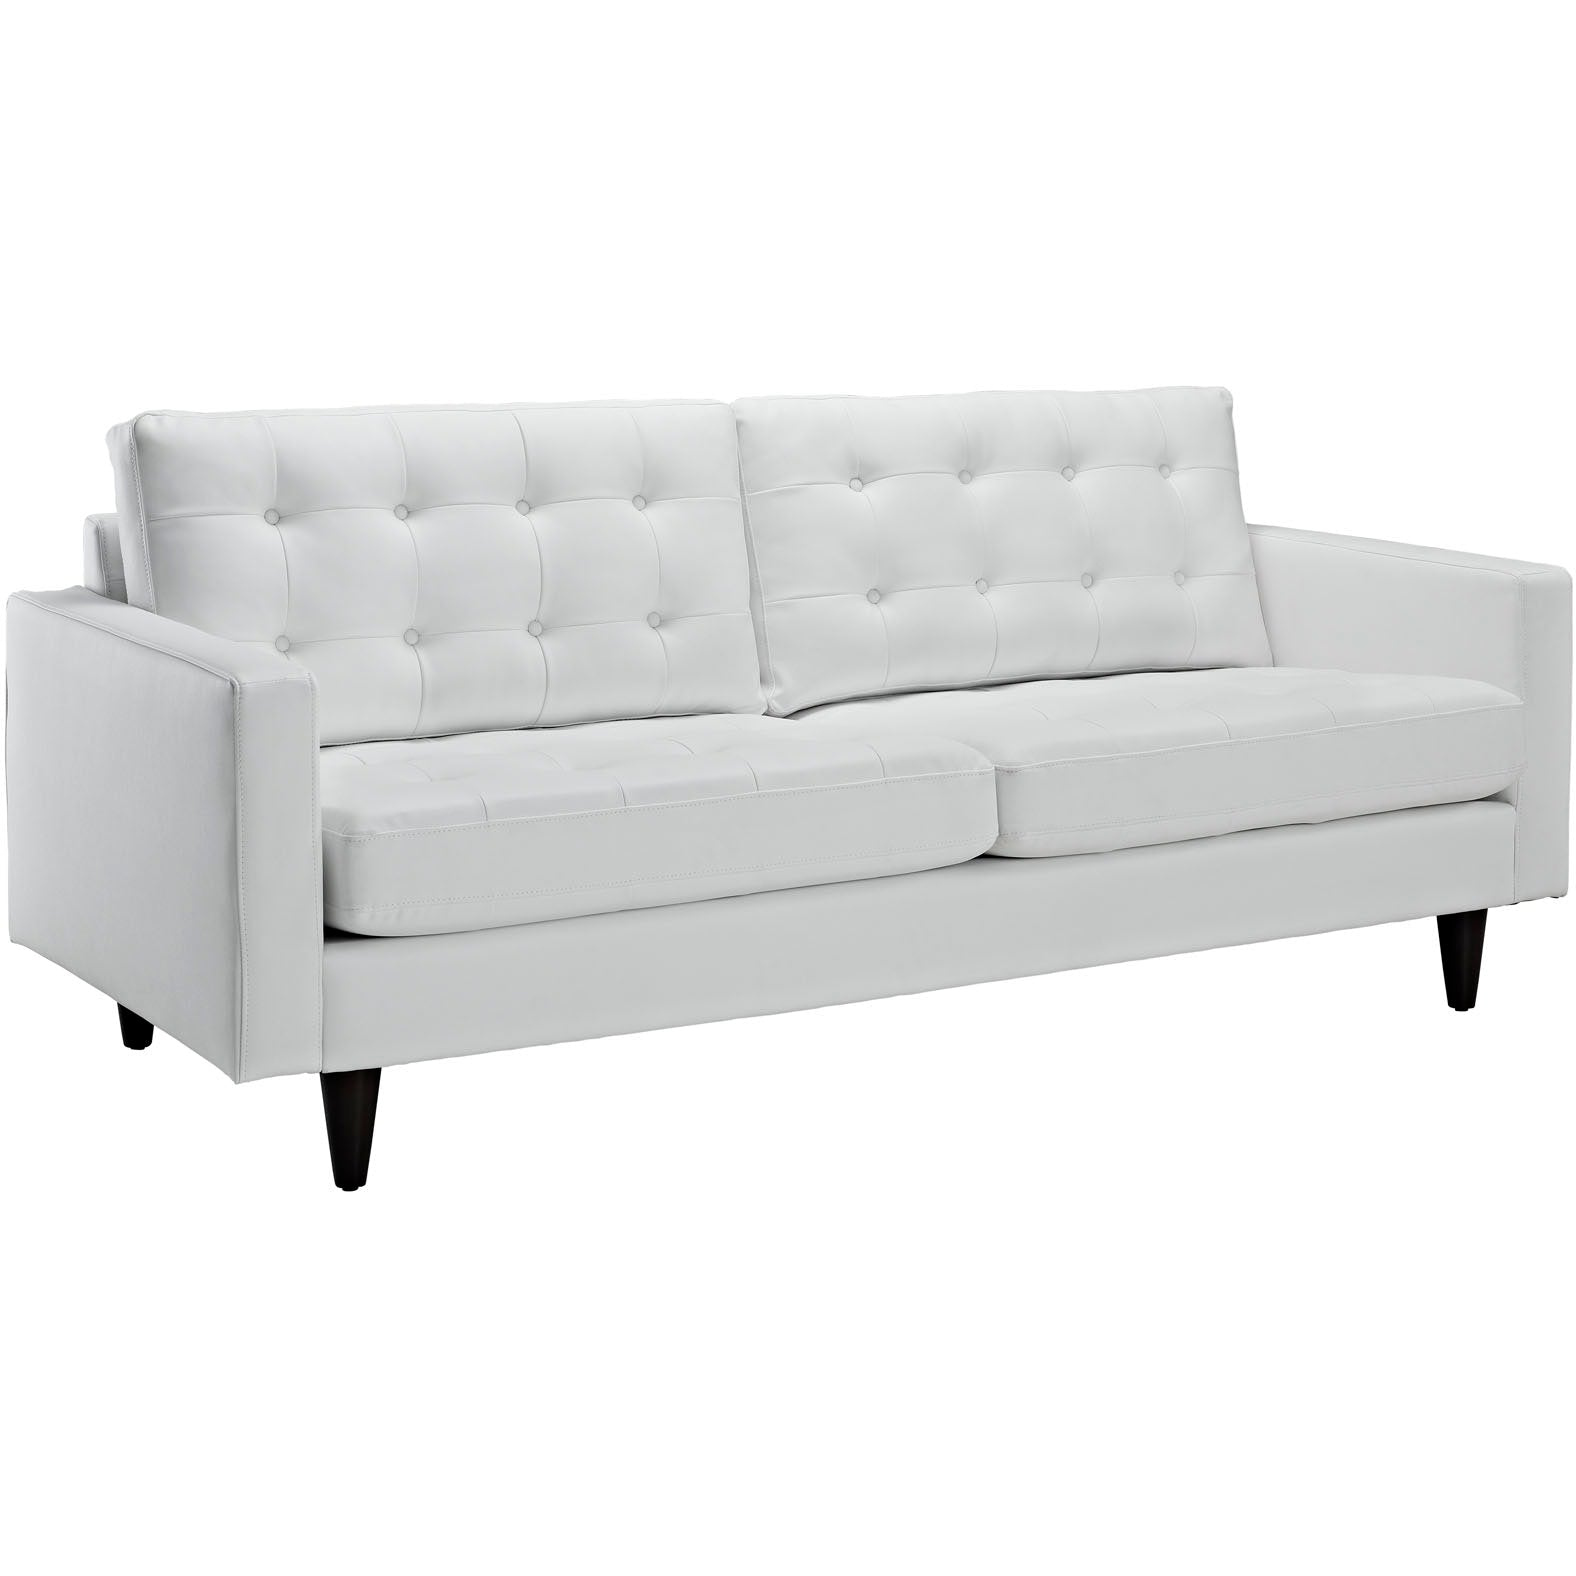 Empress Sofa and Armchair Set of 2 - White